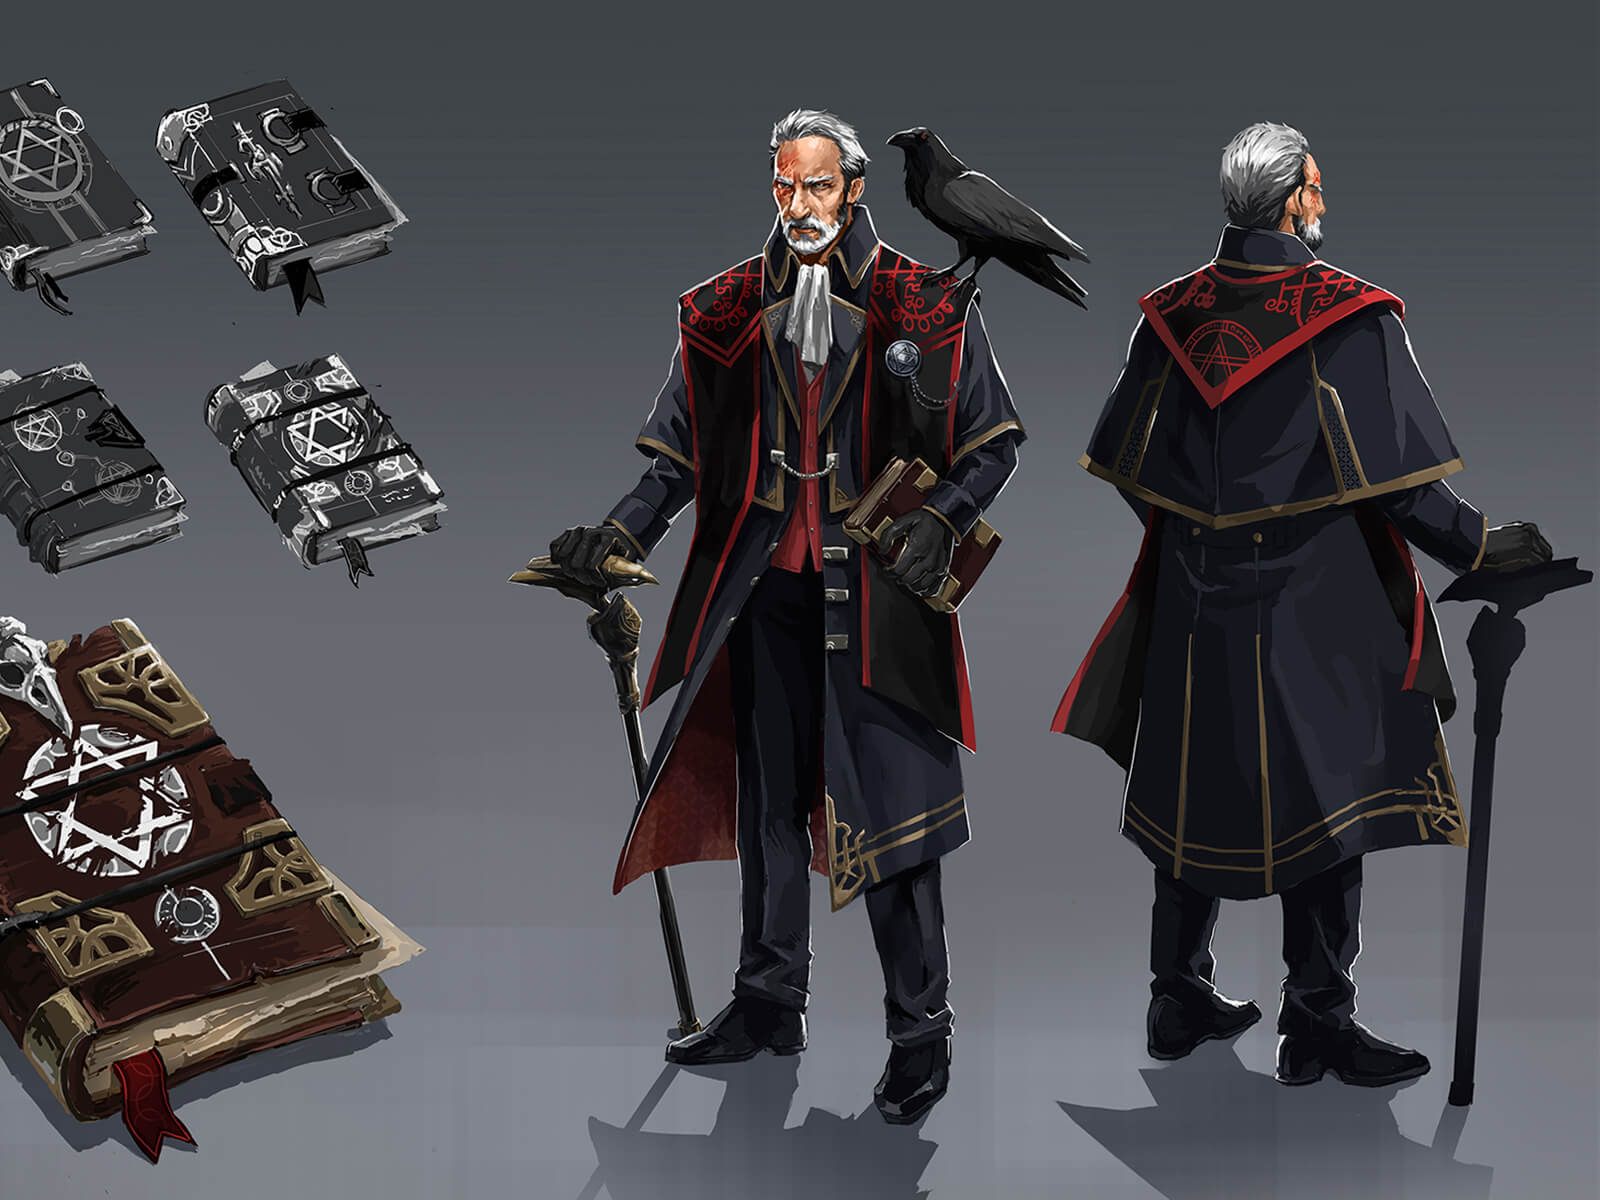 An old man in steampunk-style wear with a raven on his shoulder, with development sketches of his ornate cane and journal.